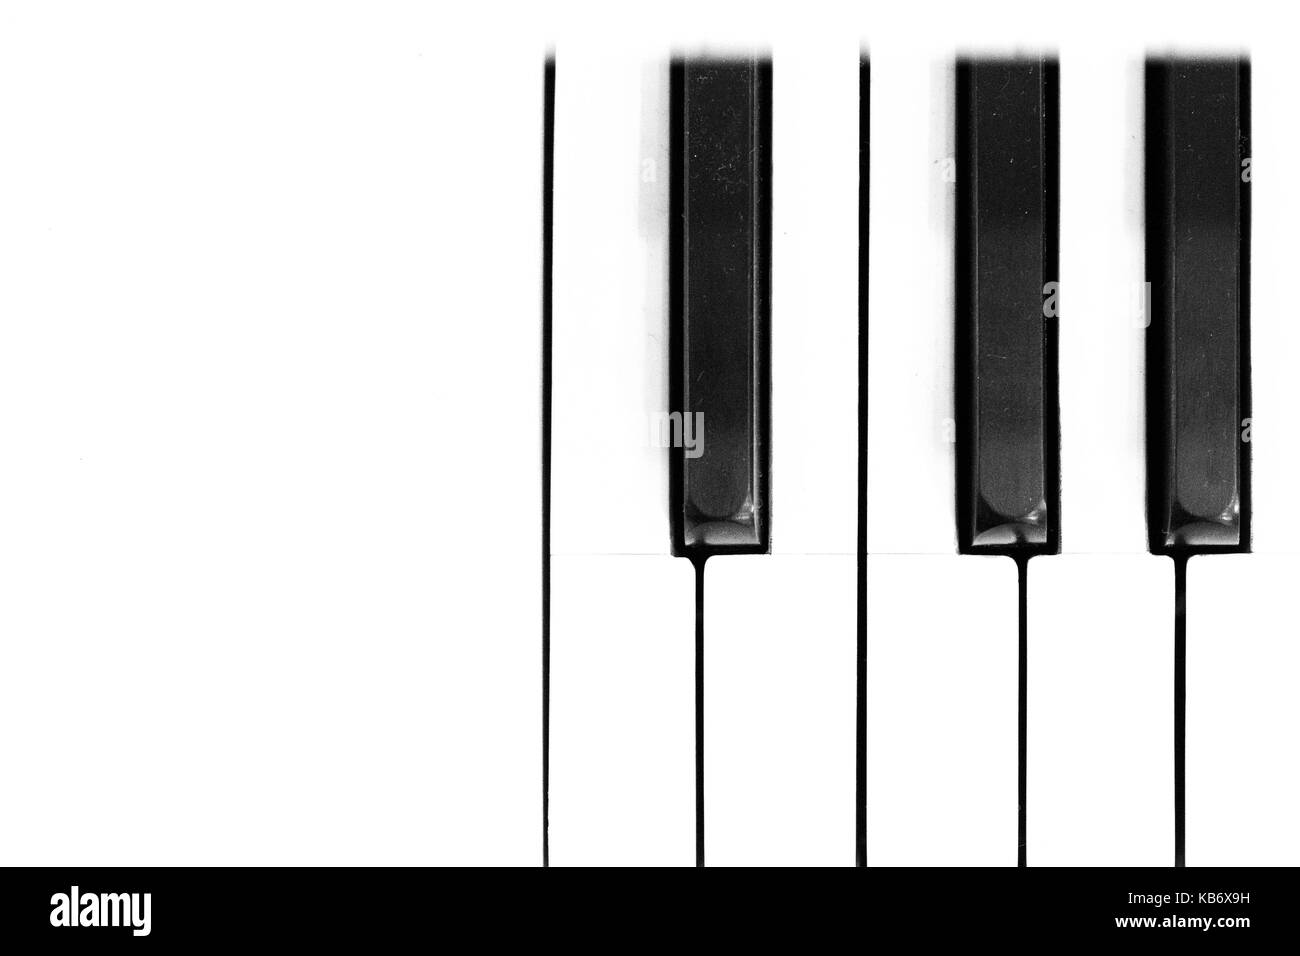 Piano keyboard Music background black and white close up mock up - Stock Image